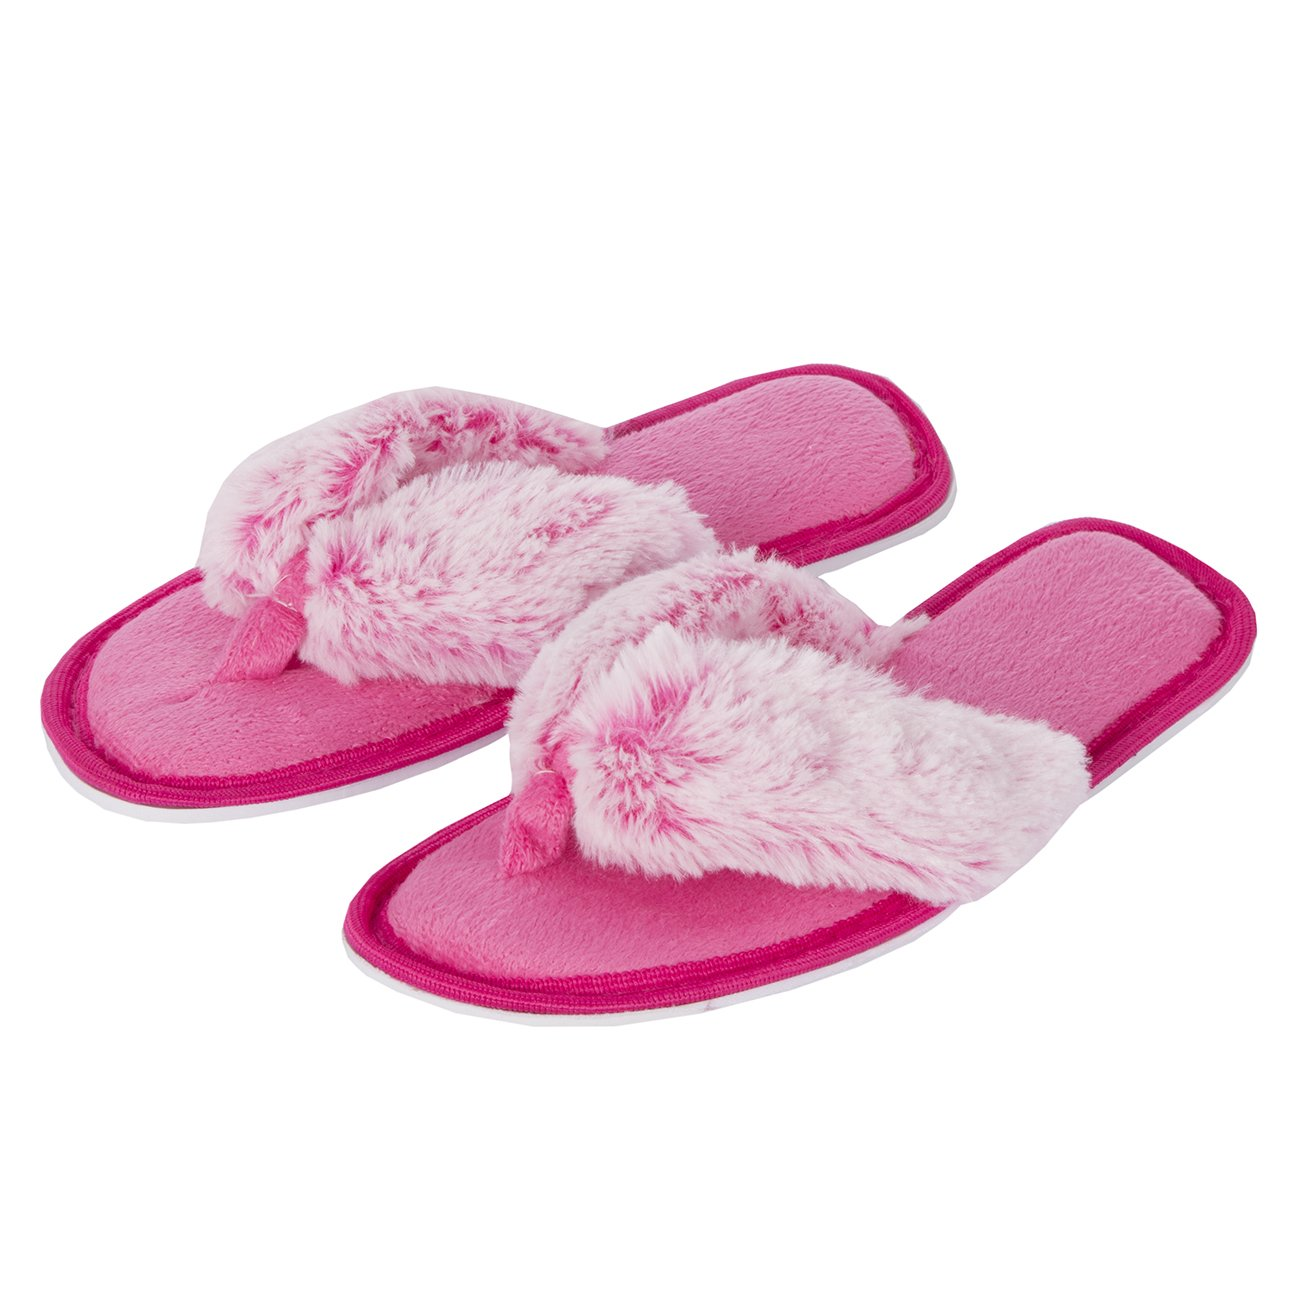 15fd07241 Forever Dreaming Womens Open Toe Memory Foam Faux Fur Indoor Flip Flop  Thong Slippers